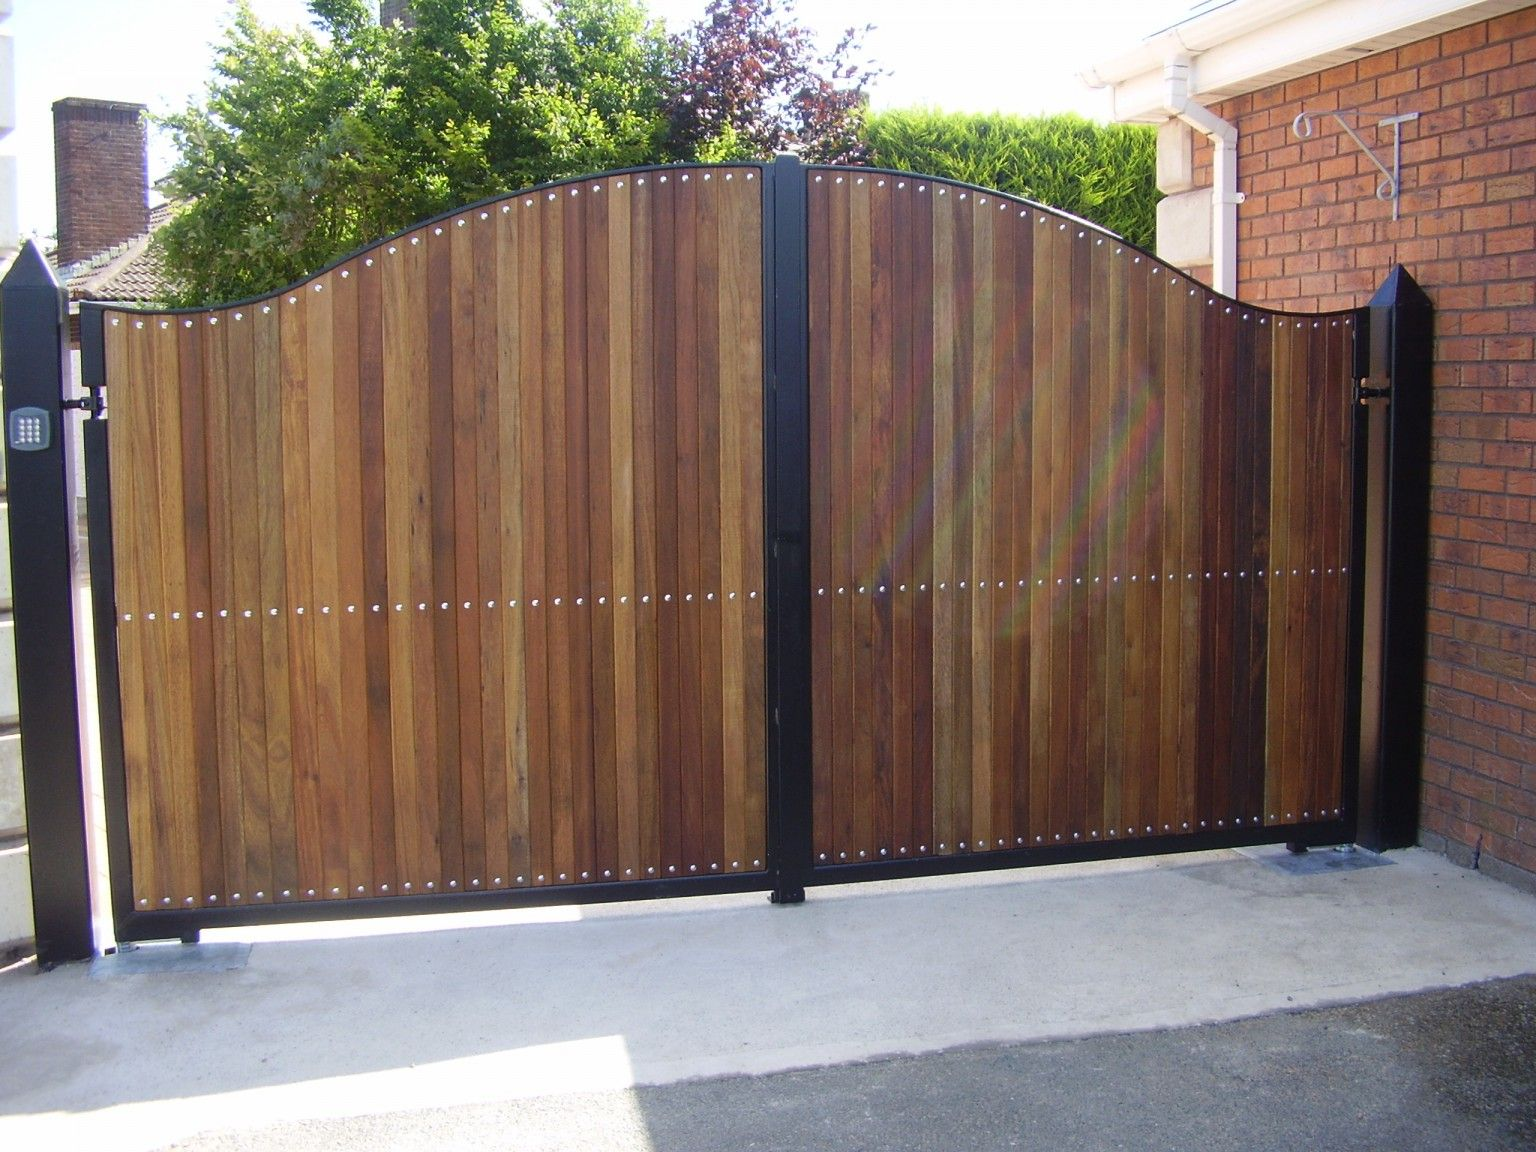 Irish Fencing and Railings- K02- Timber Domestic Gates 08 (12)